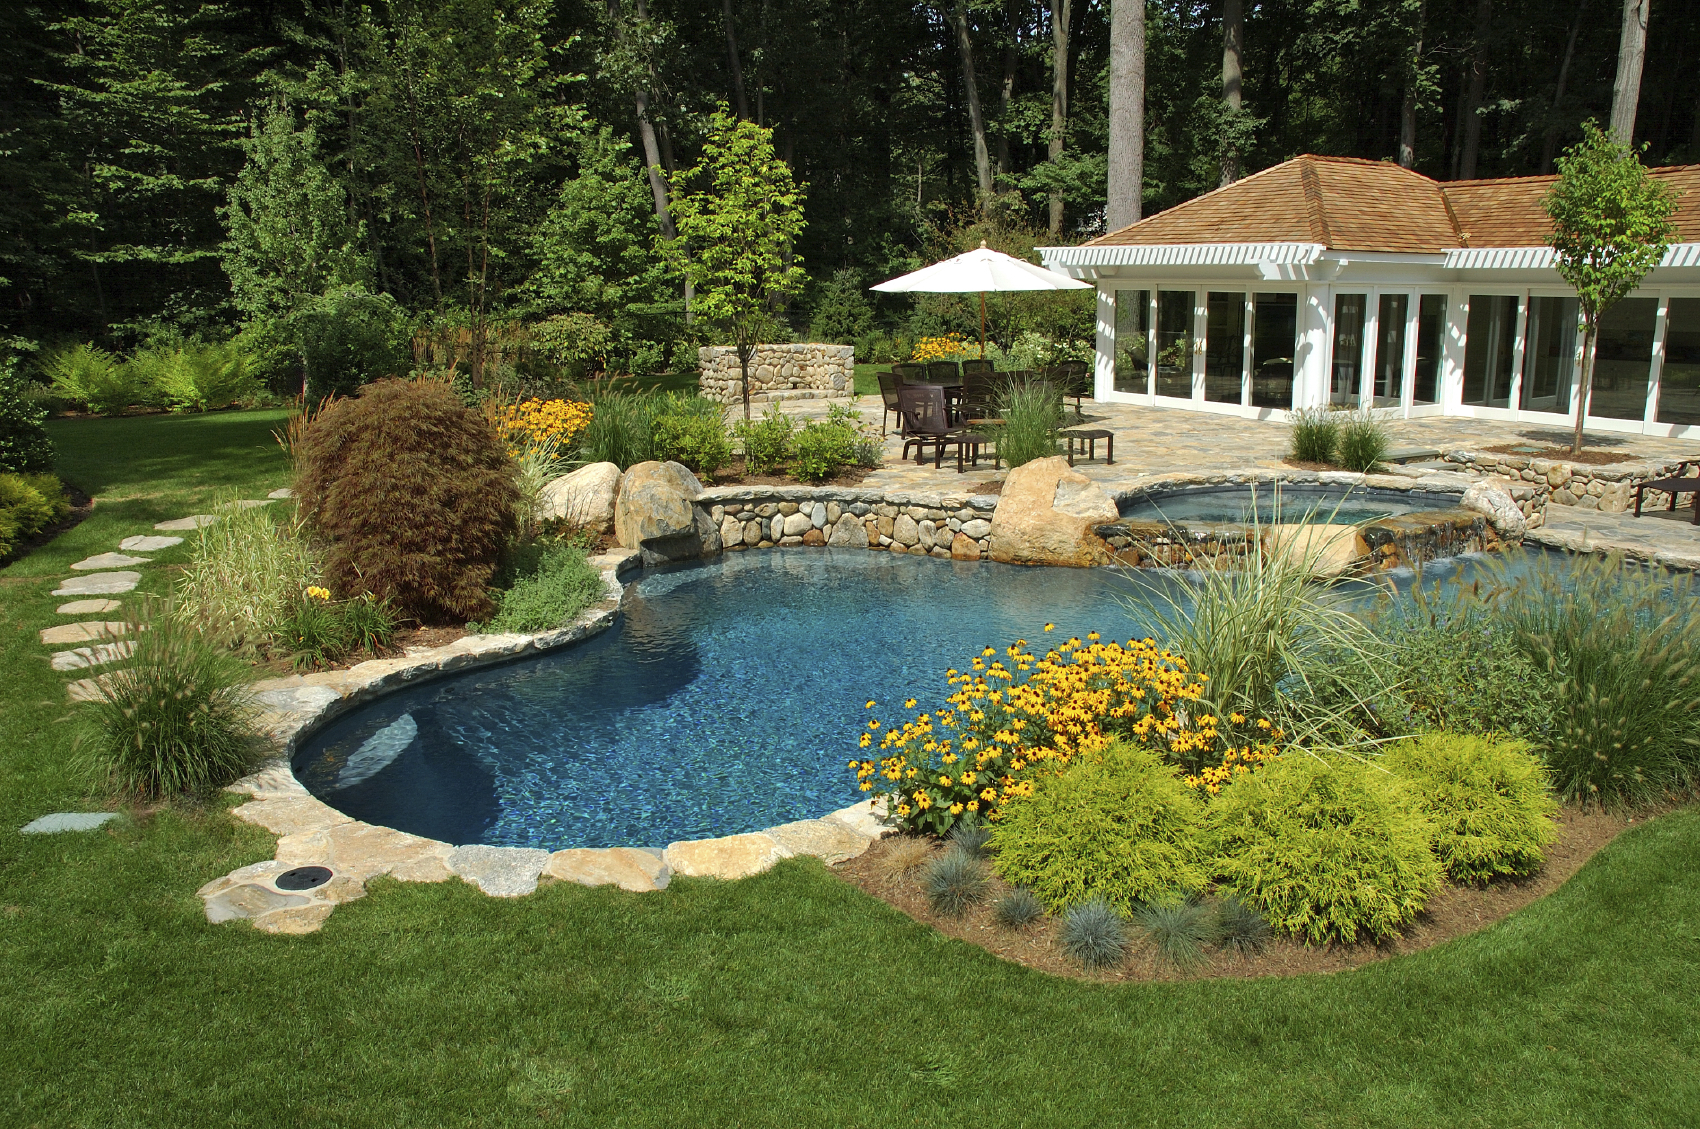 Cape Cod Swimming Pool | Cape Cod Homeowners Resource Guide